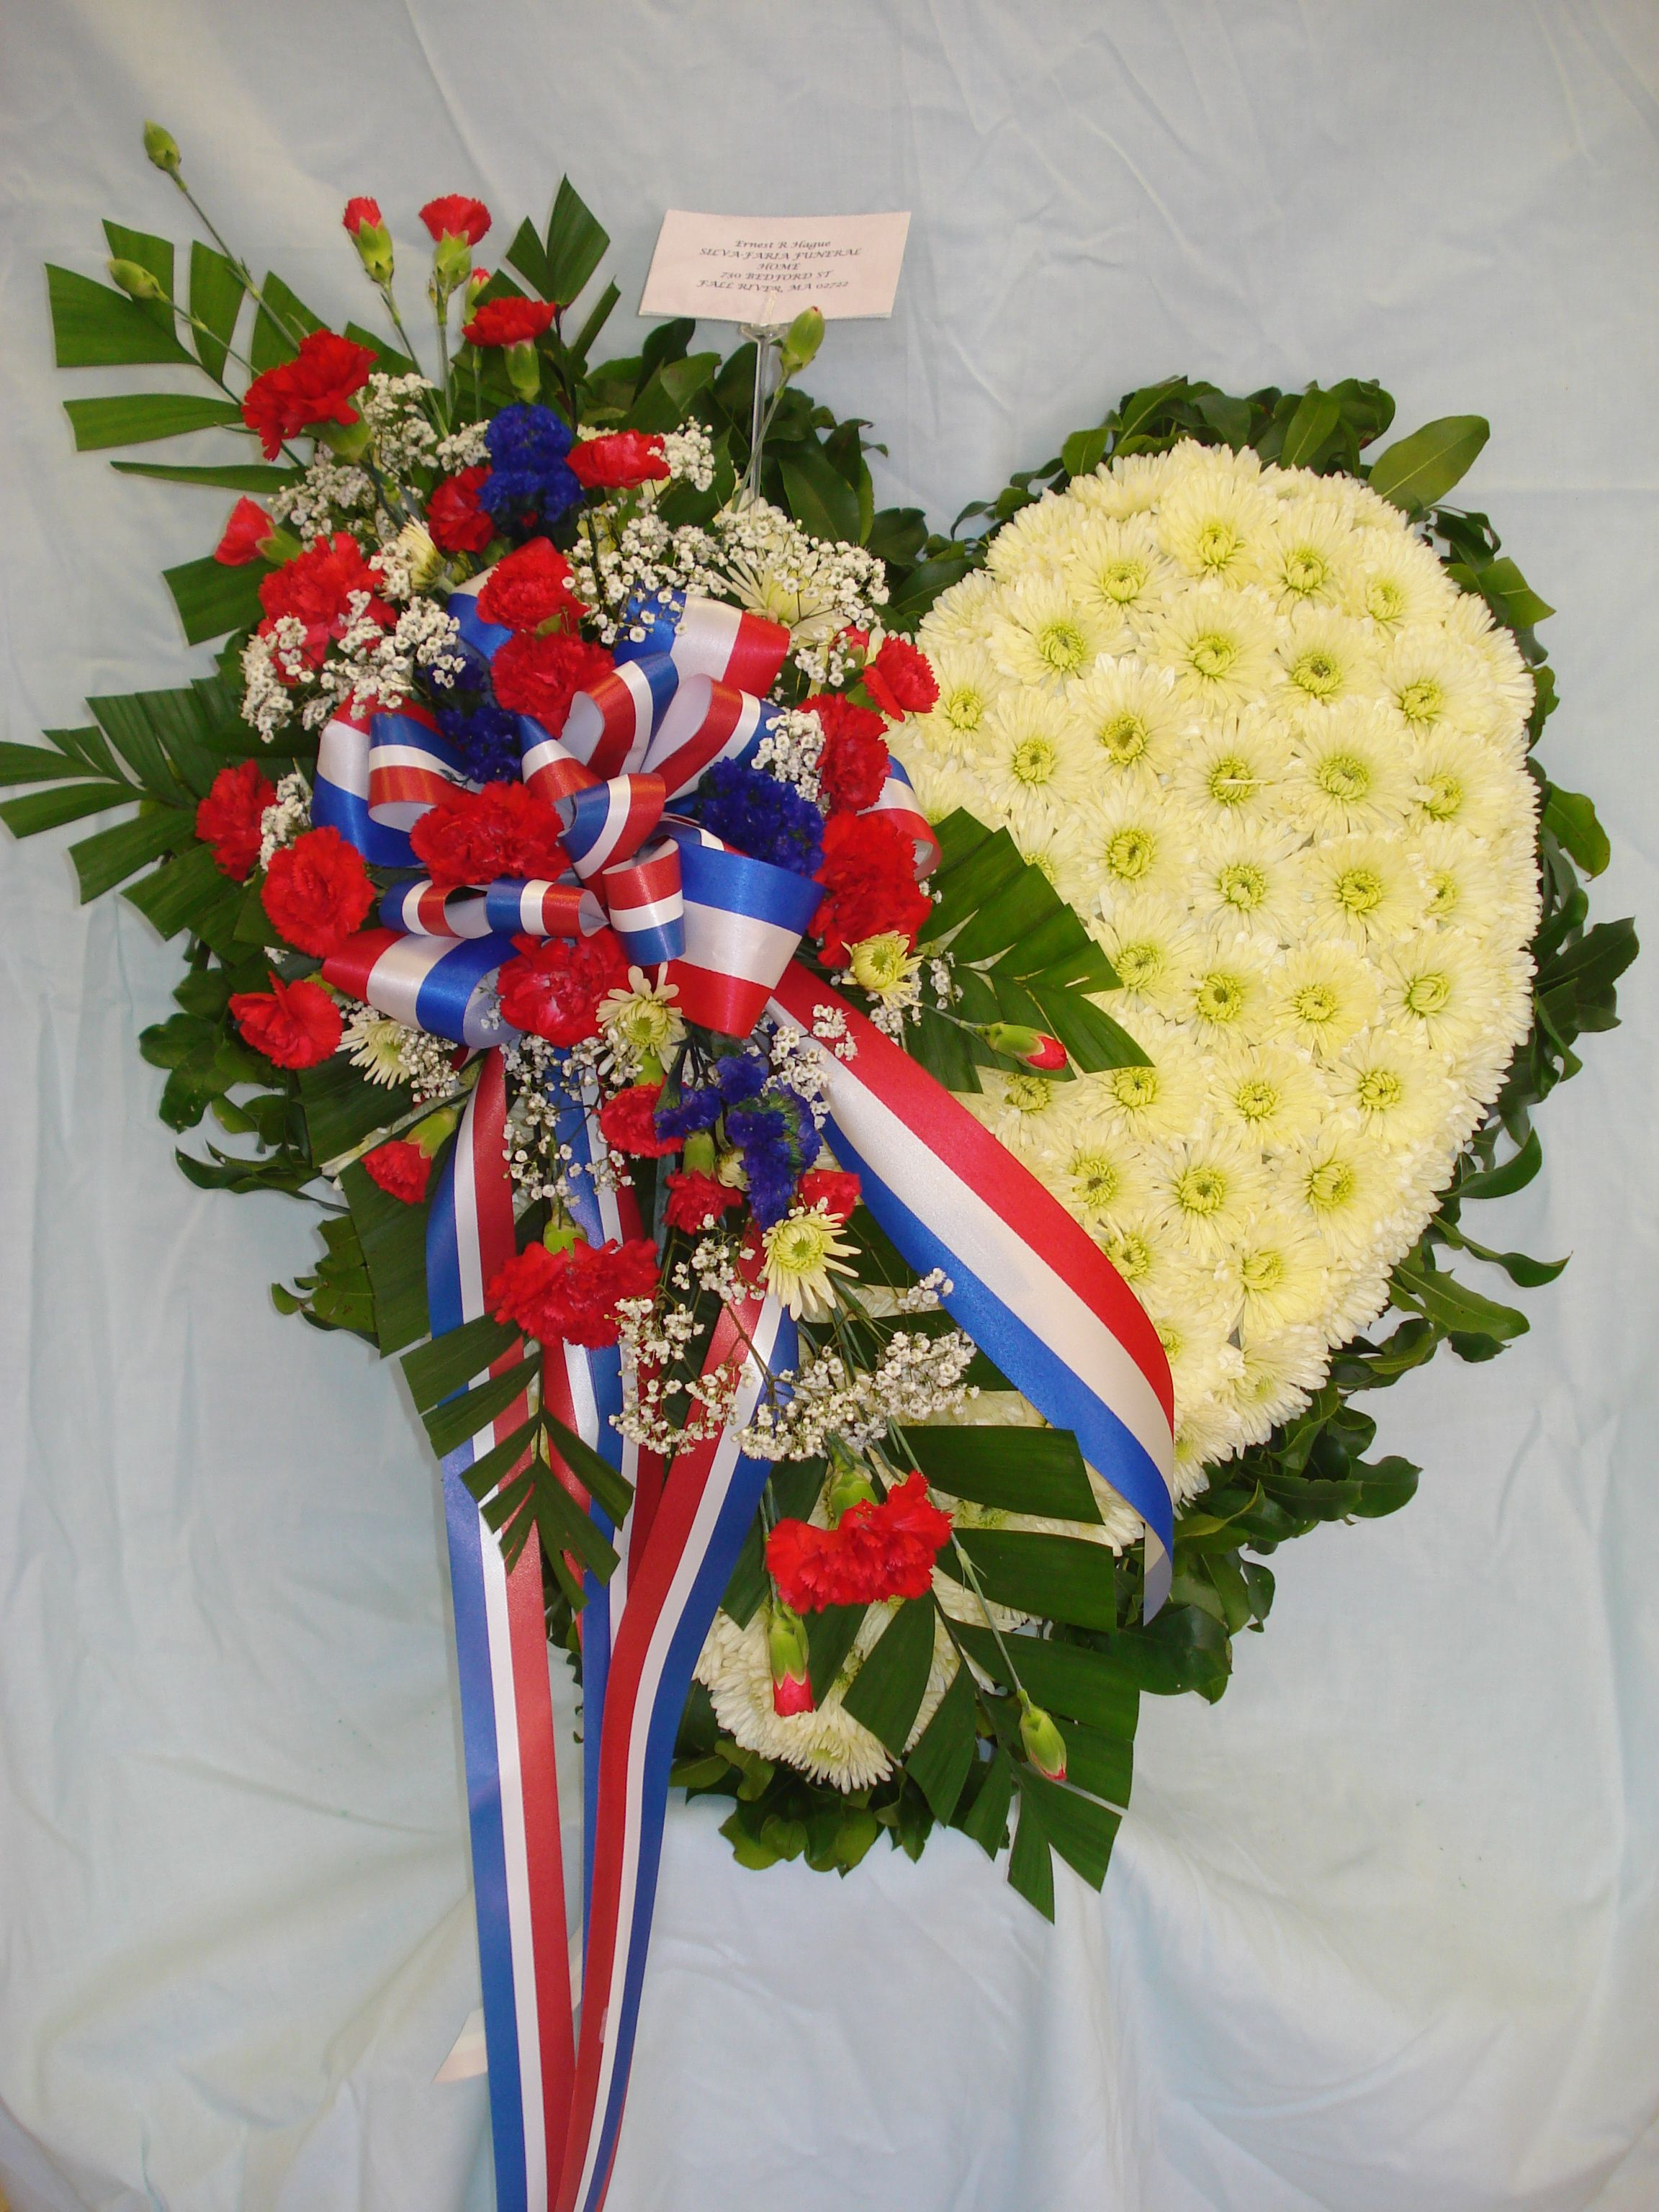 For appropriate times patriotic funeral flowers final wishes for appropriate times patriotic funeral flowers izmirmasajfo